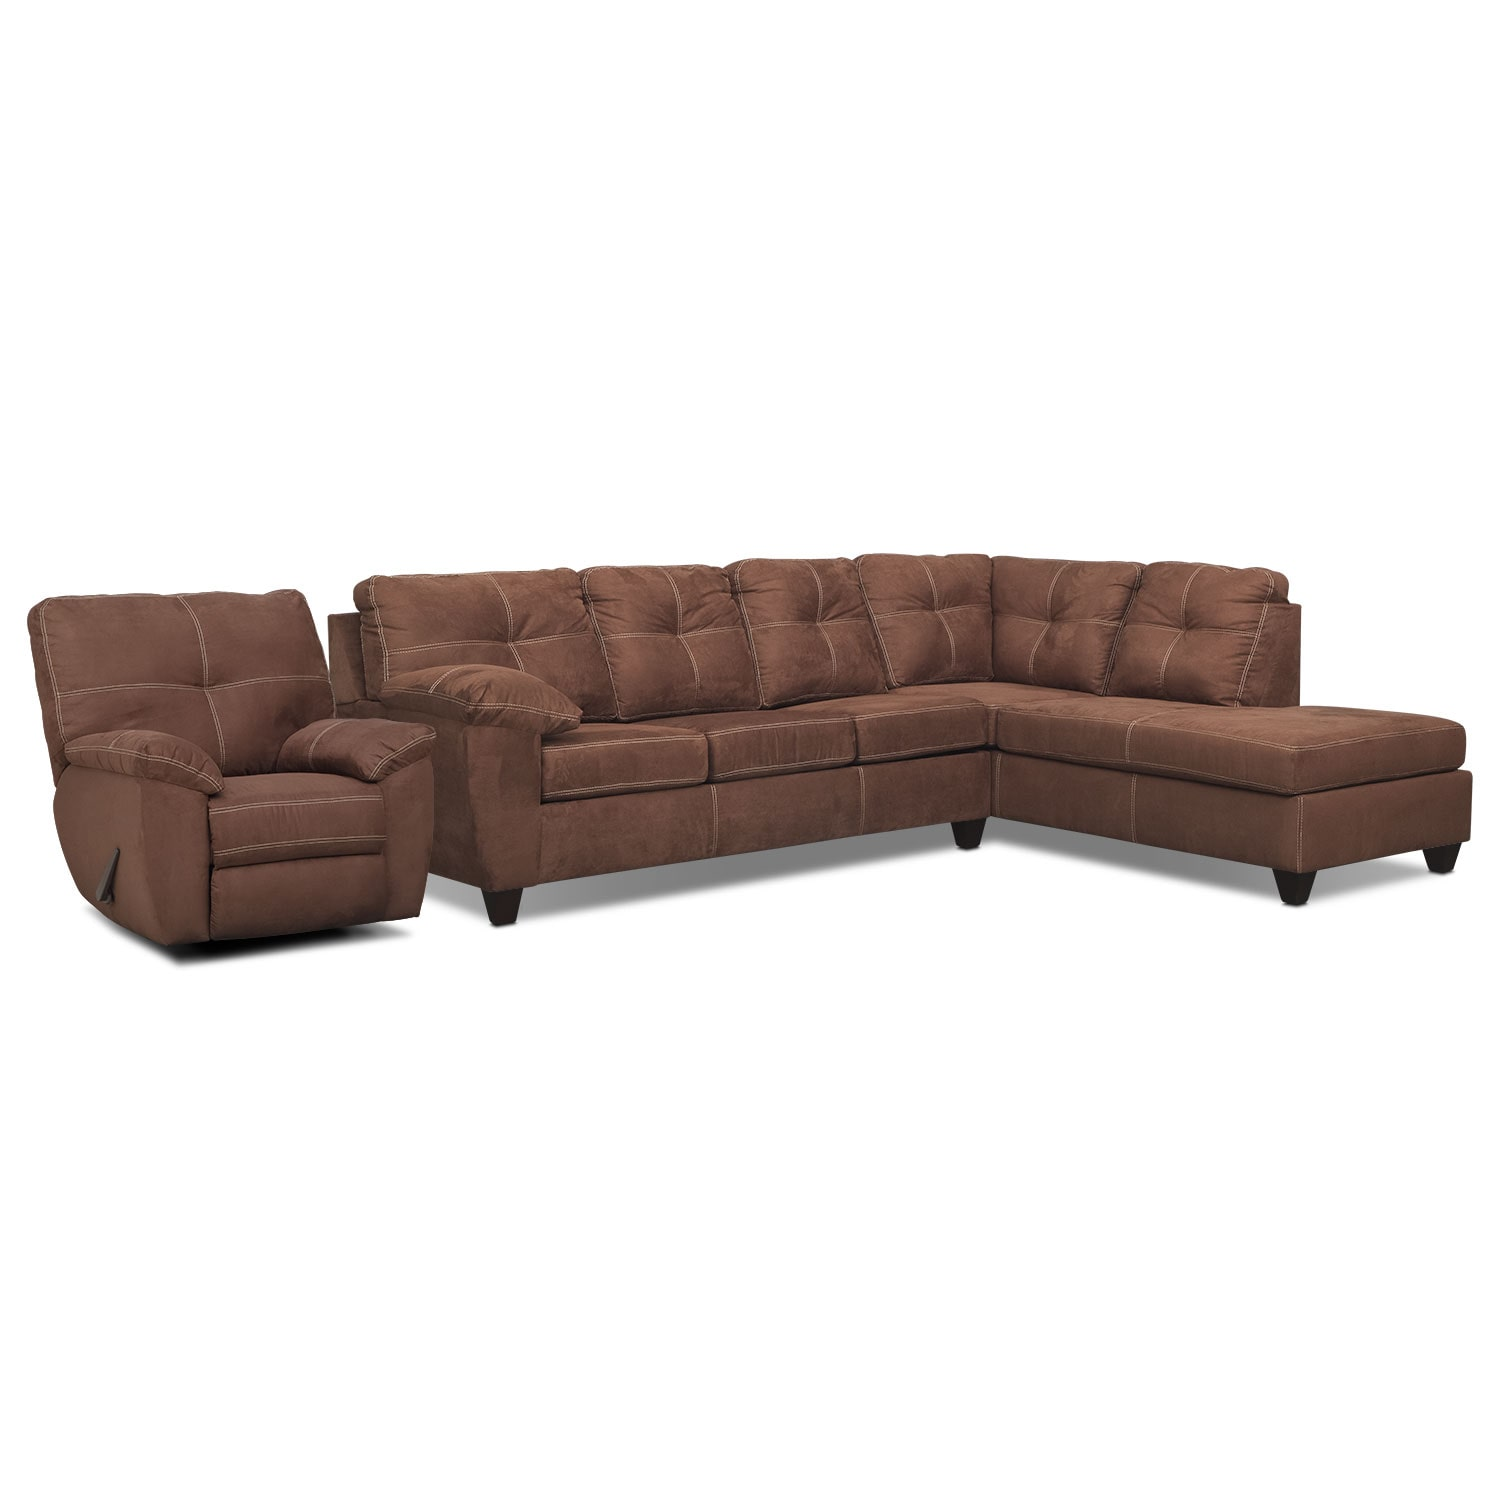 Living Room Furniture - Rialto Coffee 2 Pc. Right-Facing Chaise Sectional and Glider Recliner